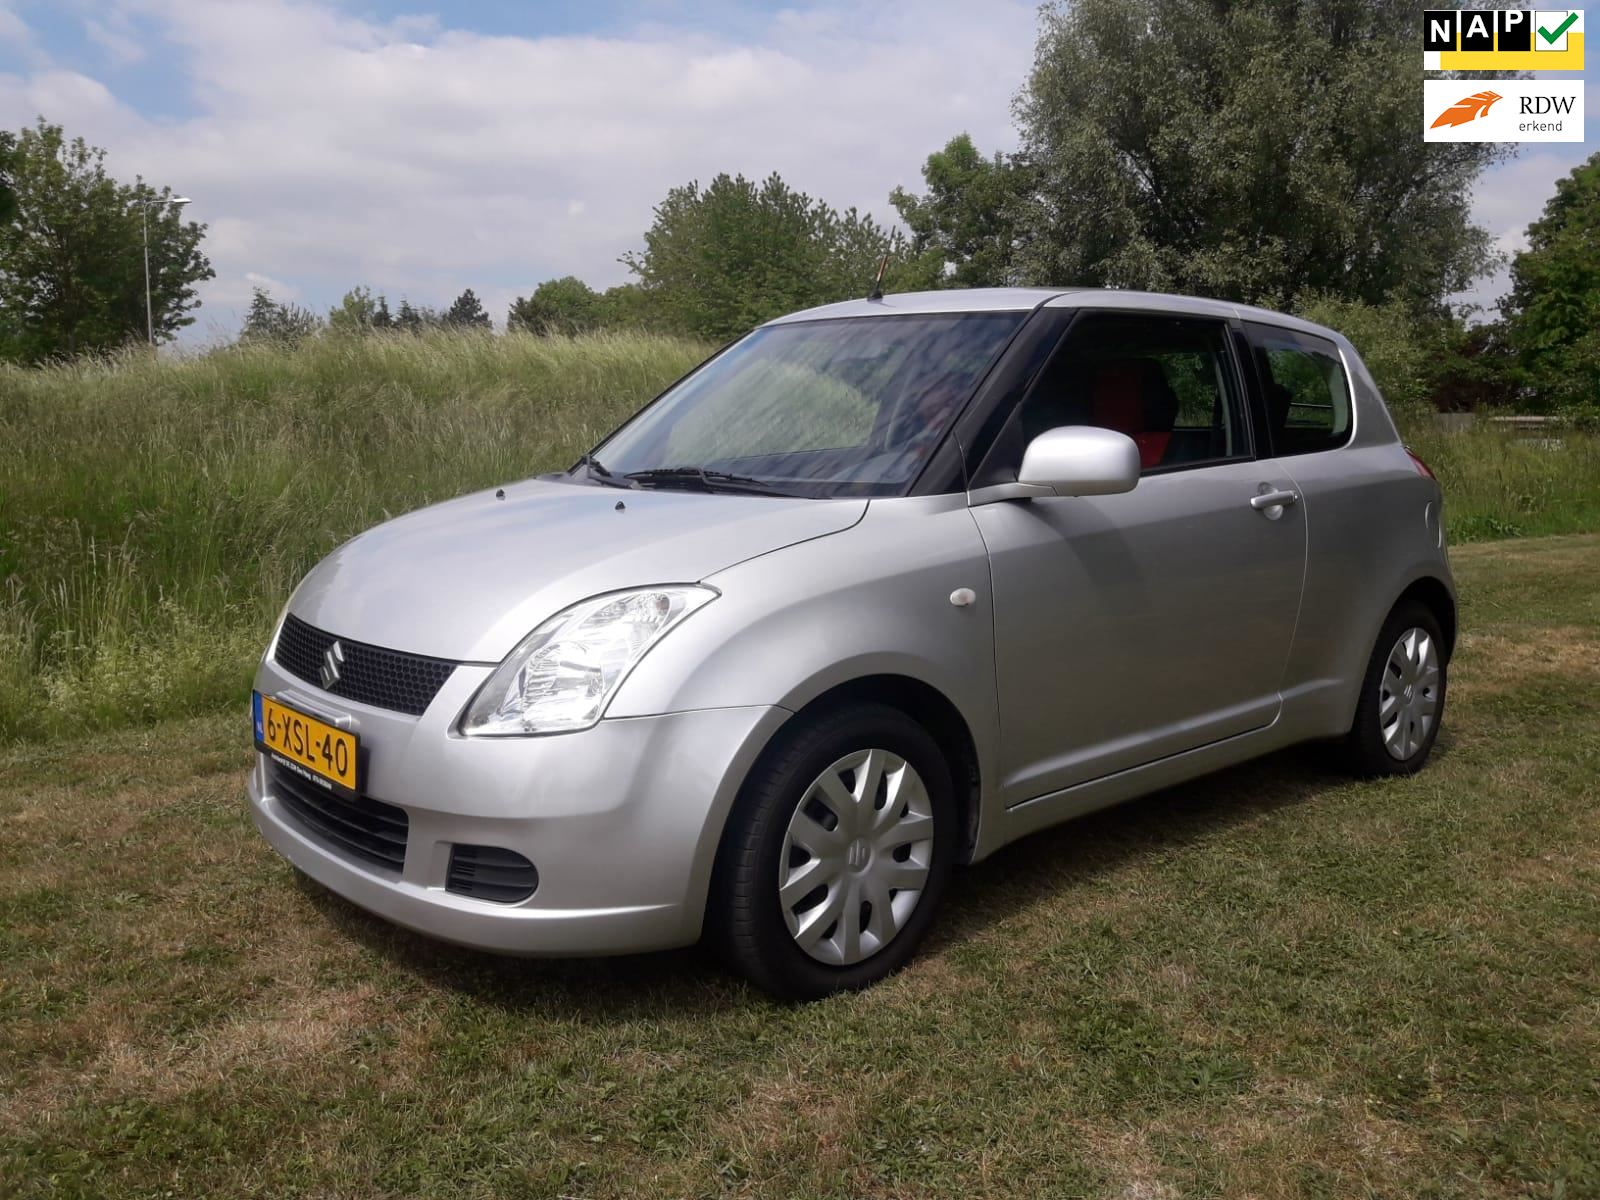 Suzuki Swift occasion - De Autoconcurrrent